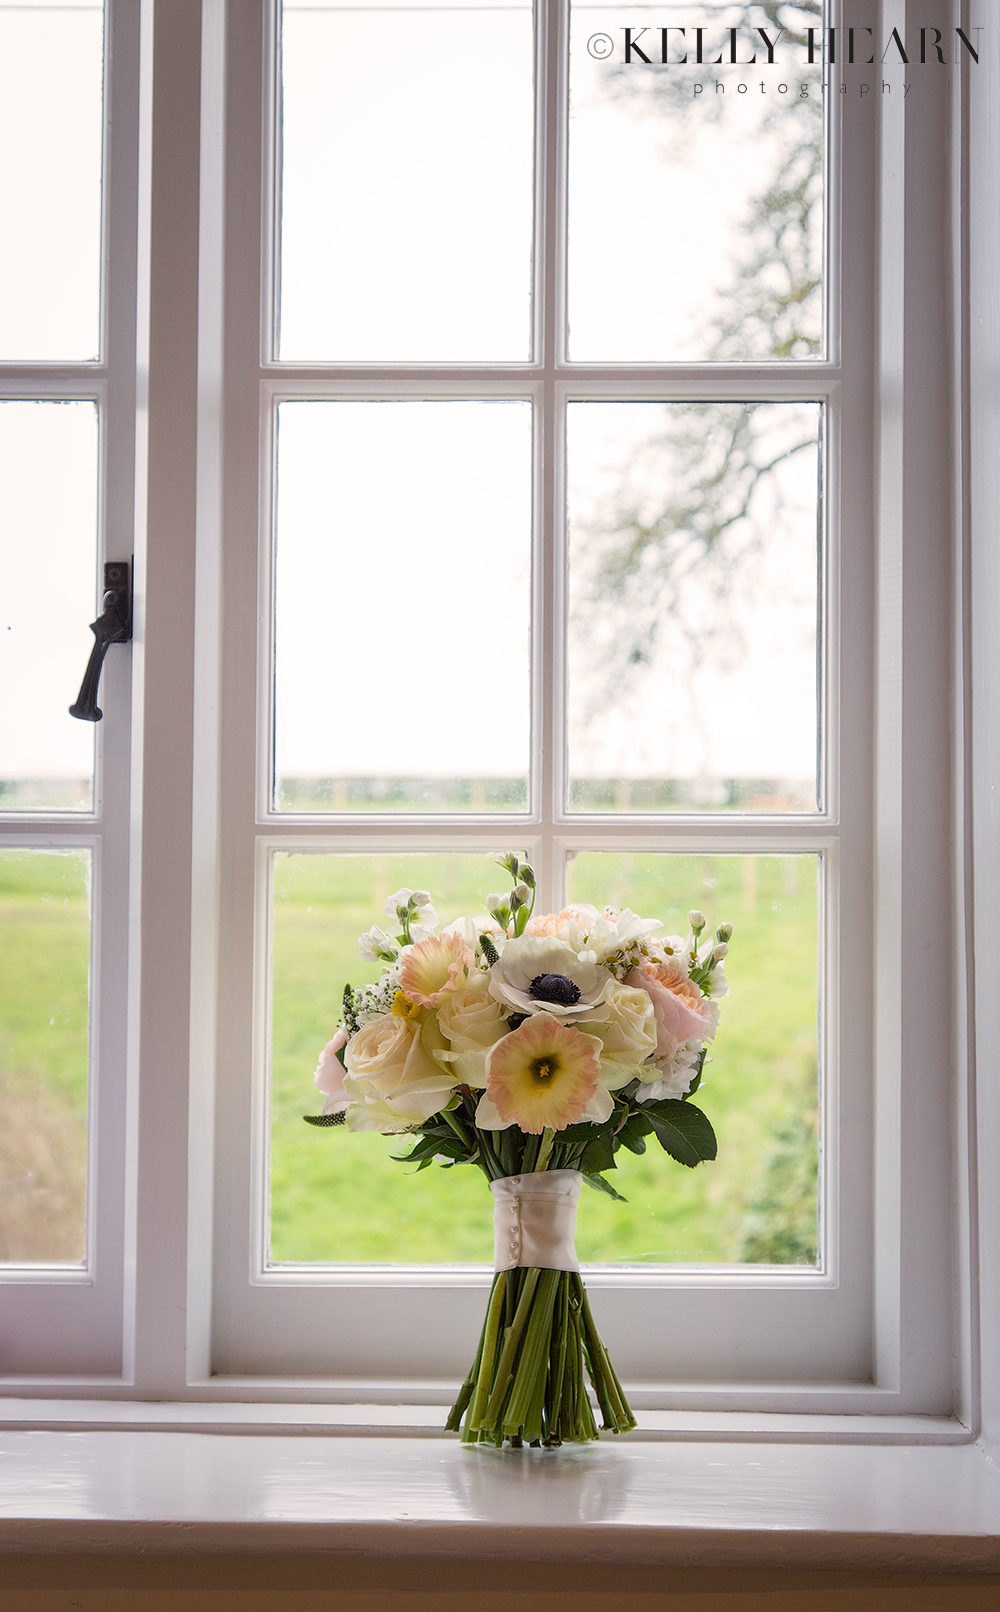 NAX_bouquet-in-window.jpg#asset:2031